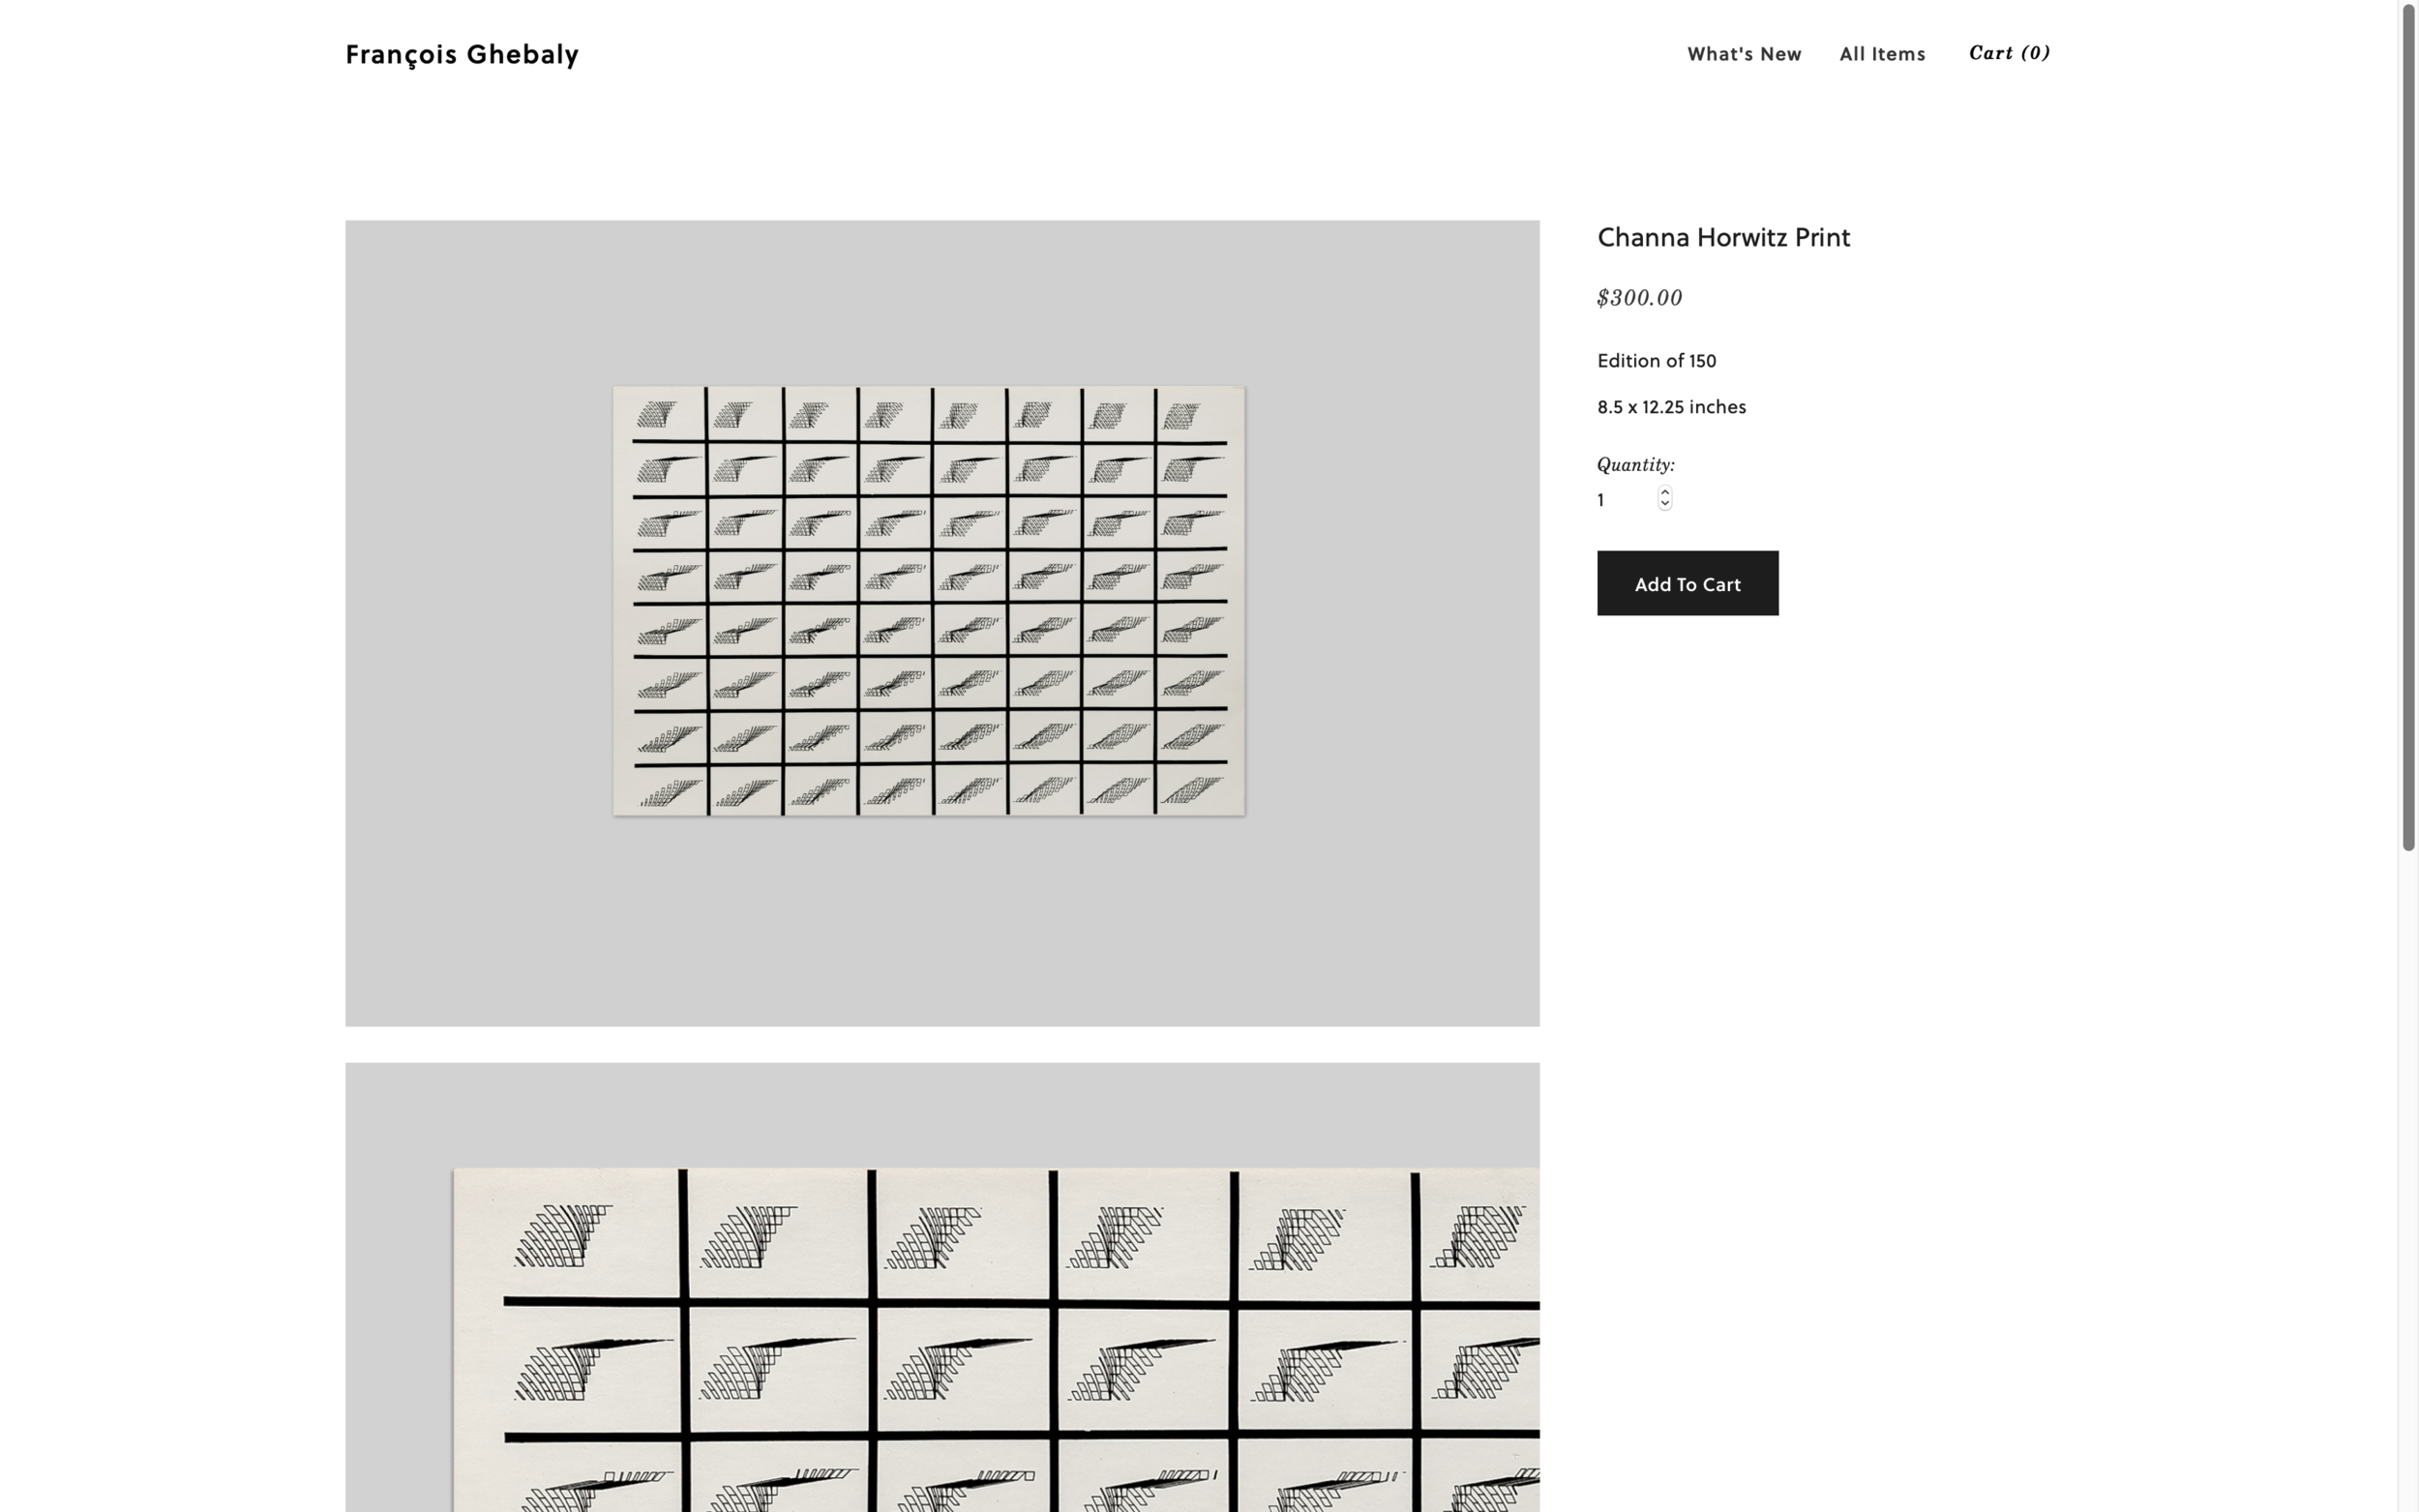 Francois-Ghebaly-store-product-details.png